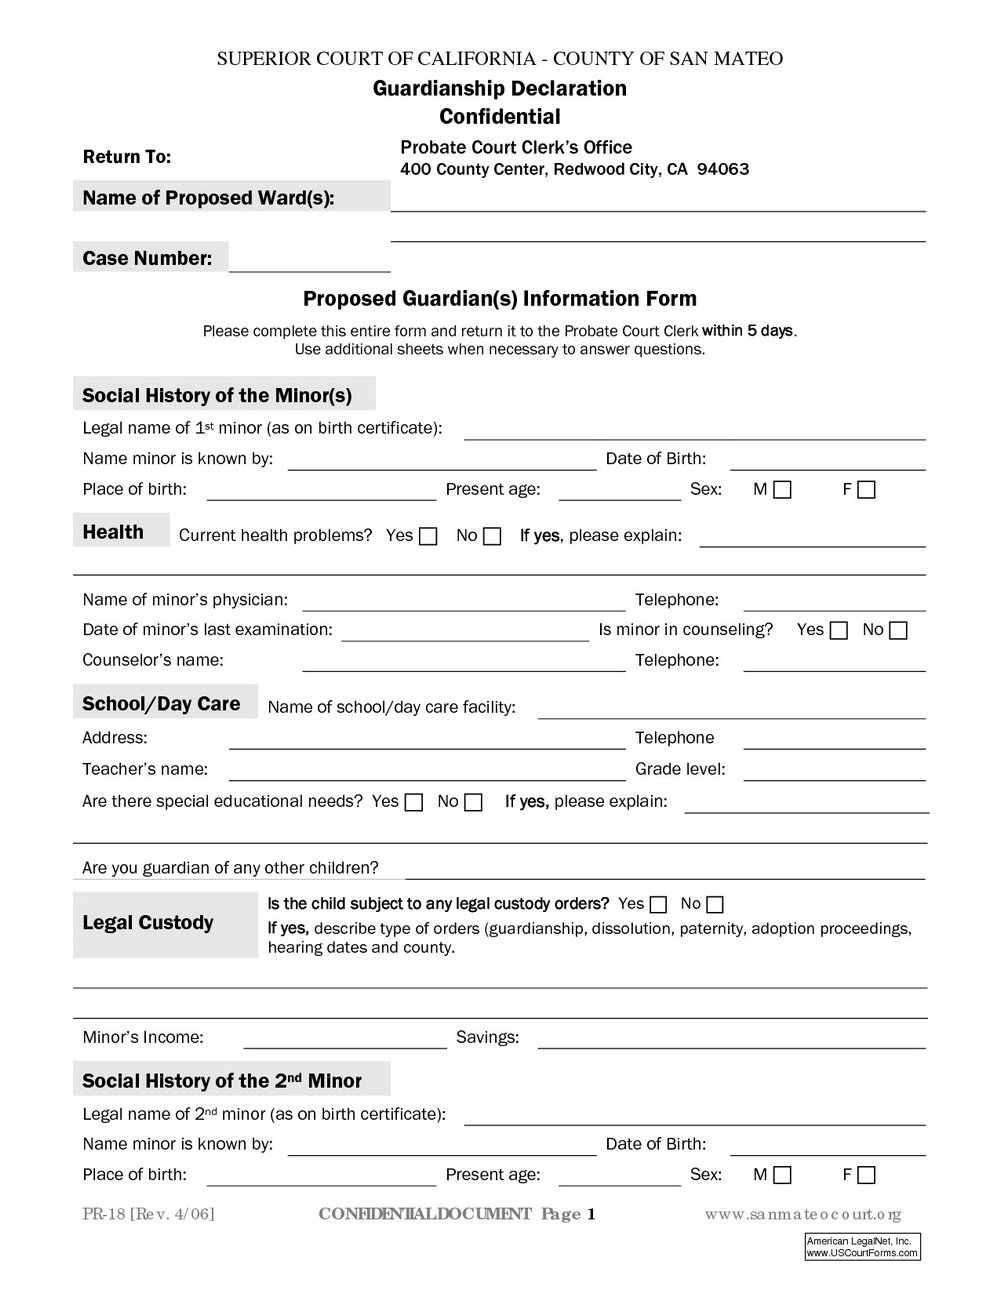 Temporary Guardianship Form Pdf